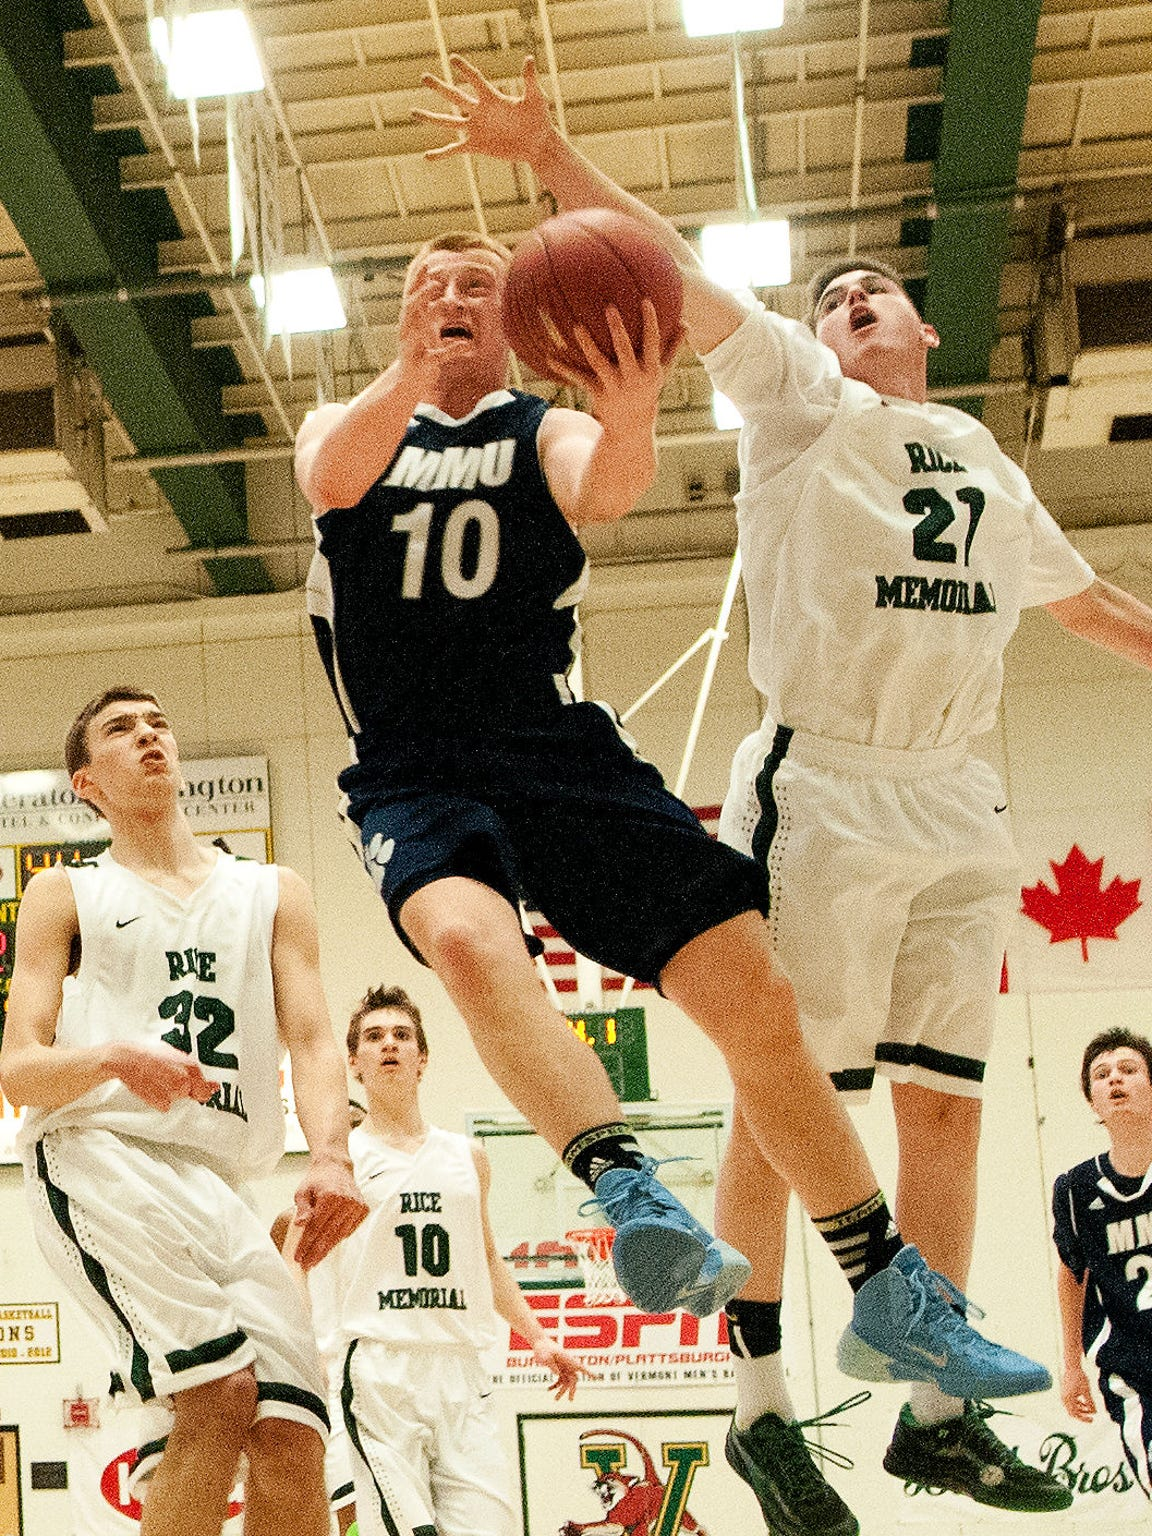 Rice's Connor Stankevich (21) tries to block a layup